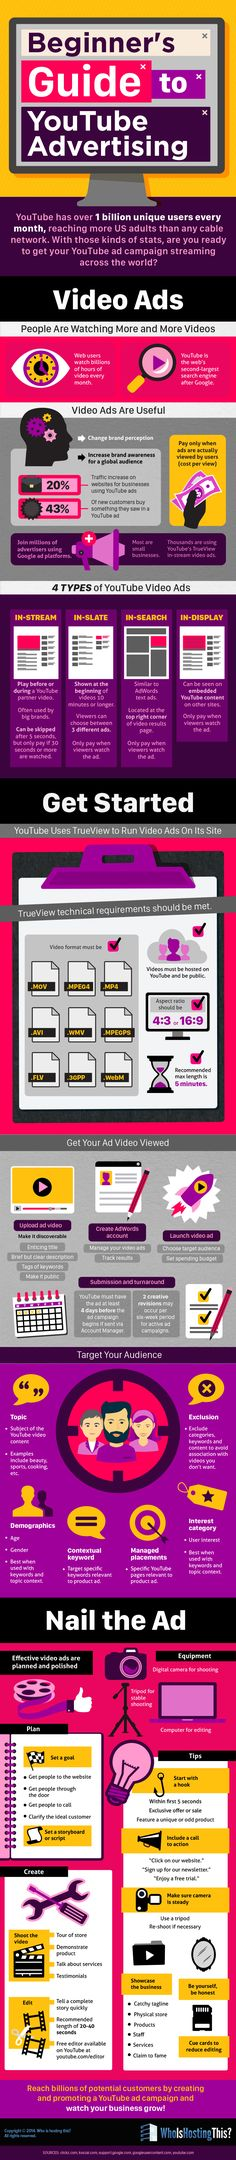 Beginner's Guide to YouTube Advertising #infographic #Advertising #YouTube   http://www.DebbieKrug.org